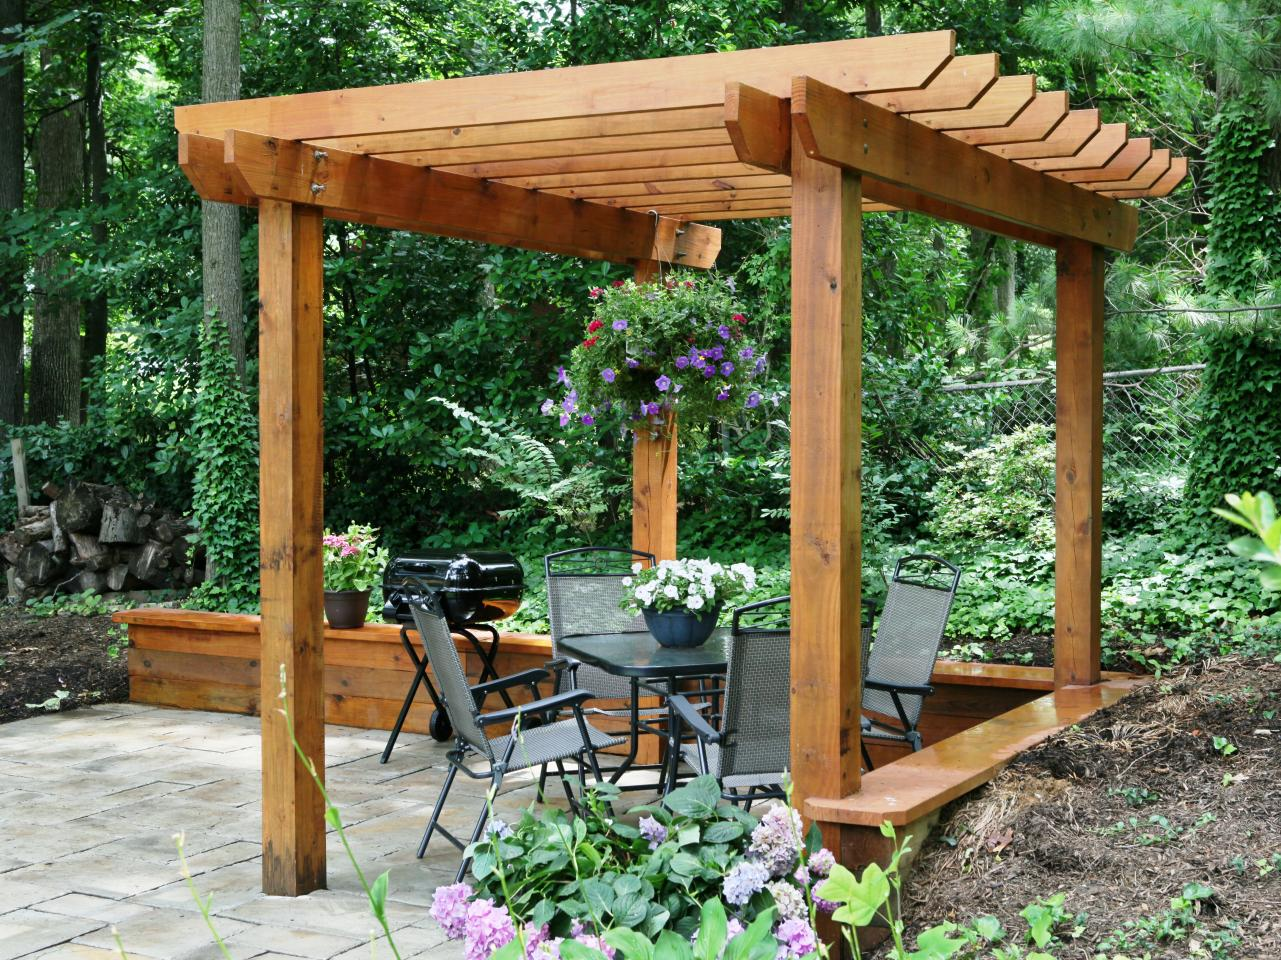 Top 20 pergola designs plus their costs diy home improvement ideas 24h site plans for - Eigentijds pergola design ...